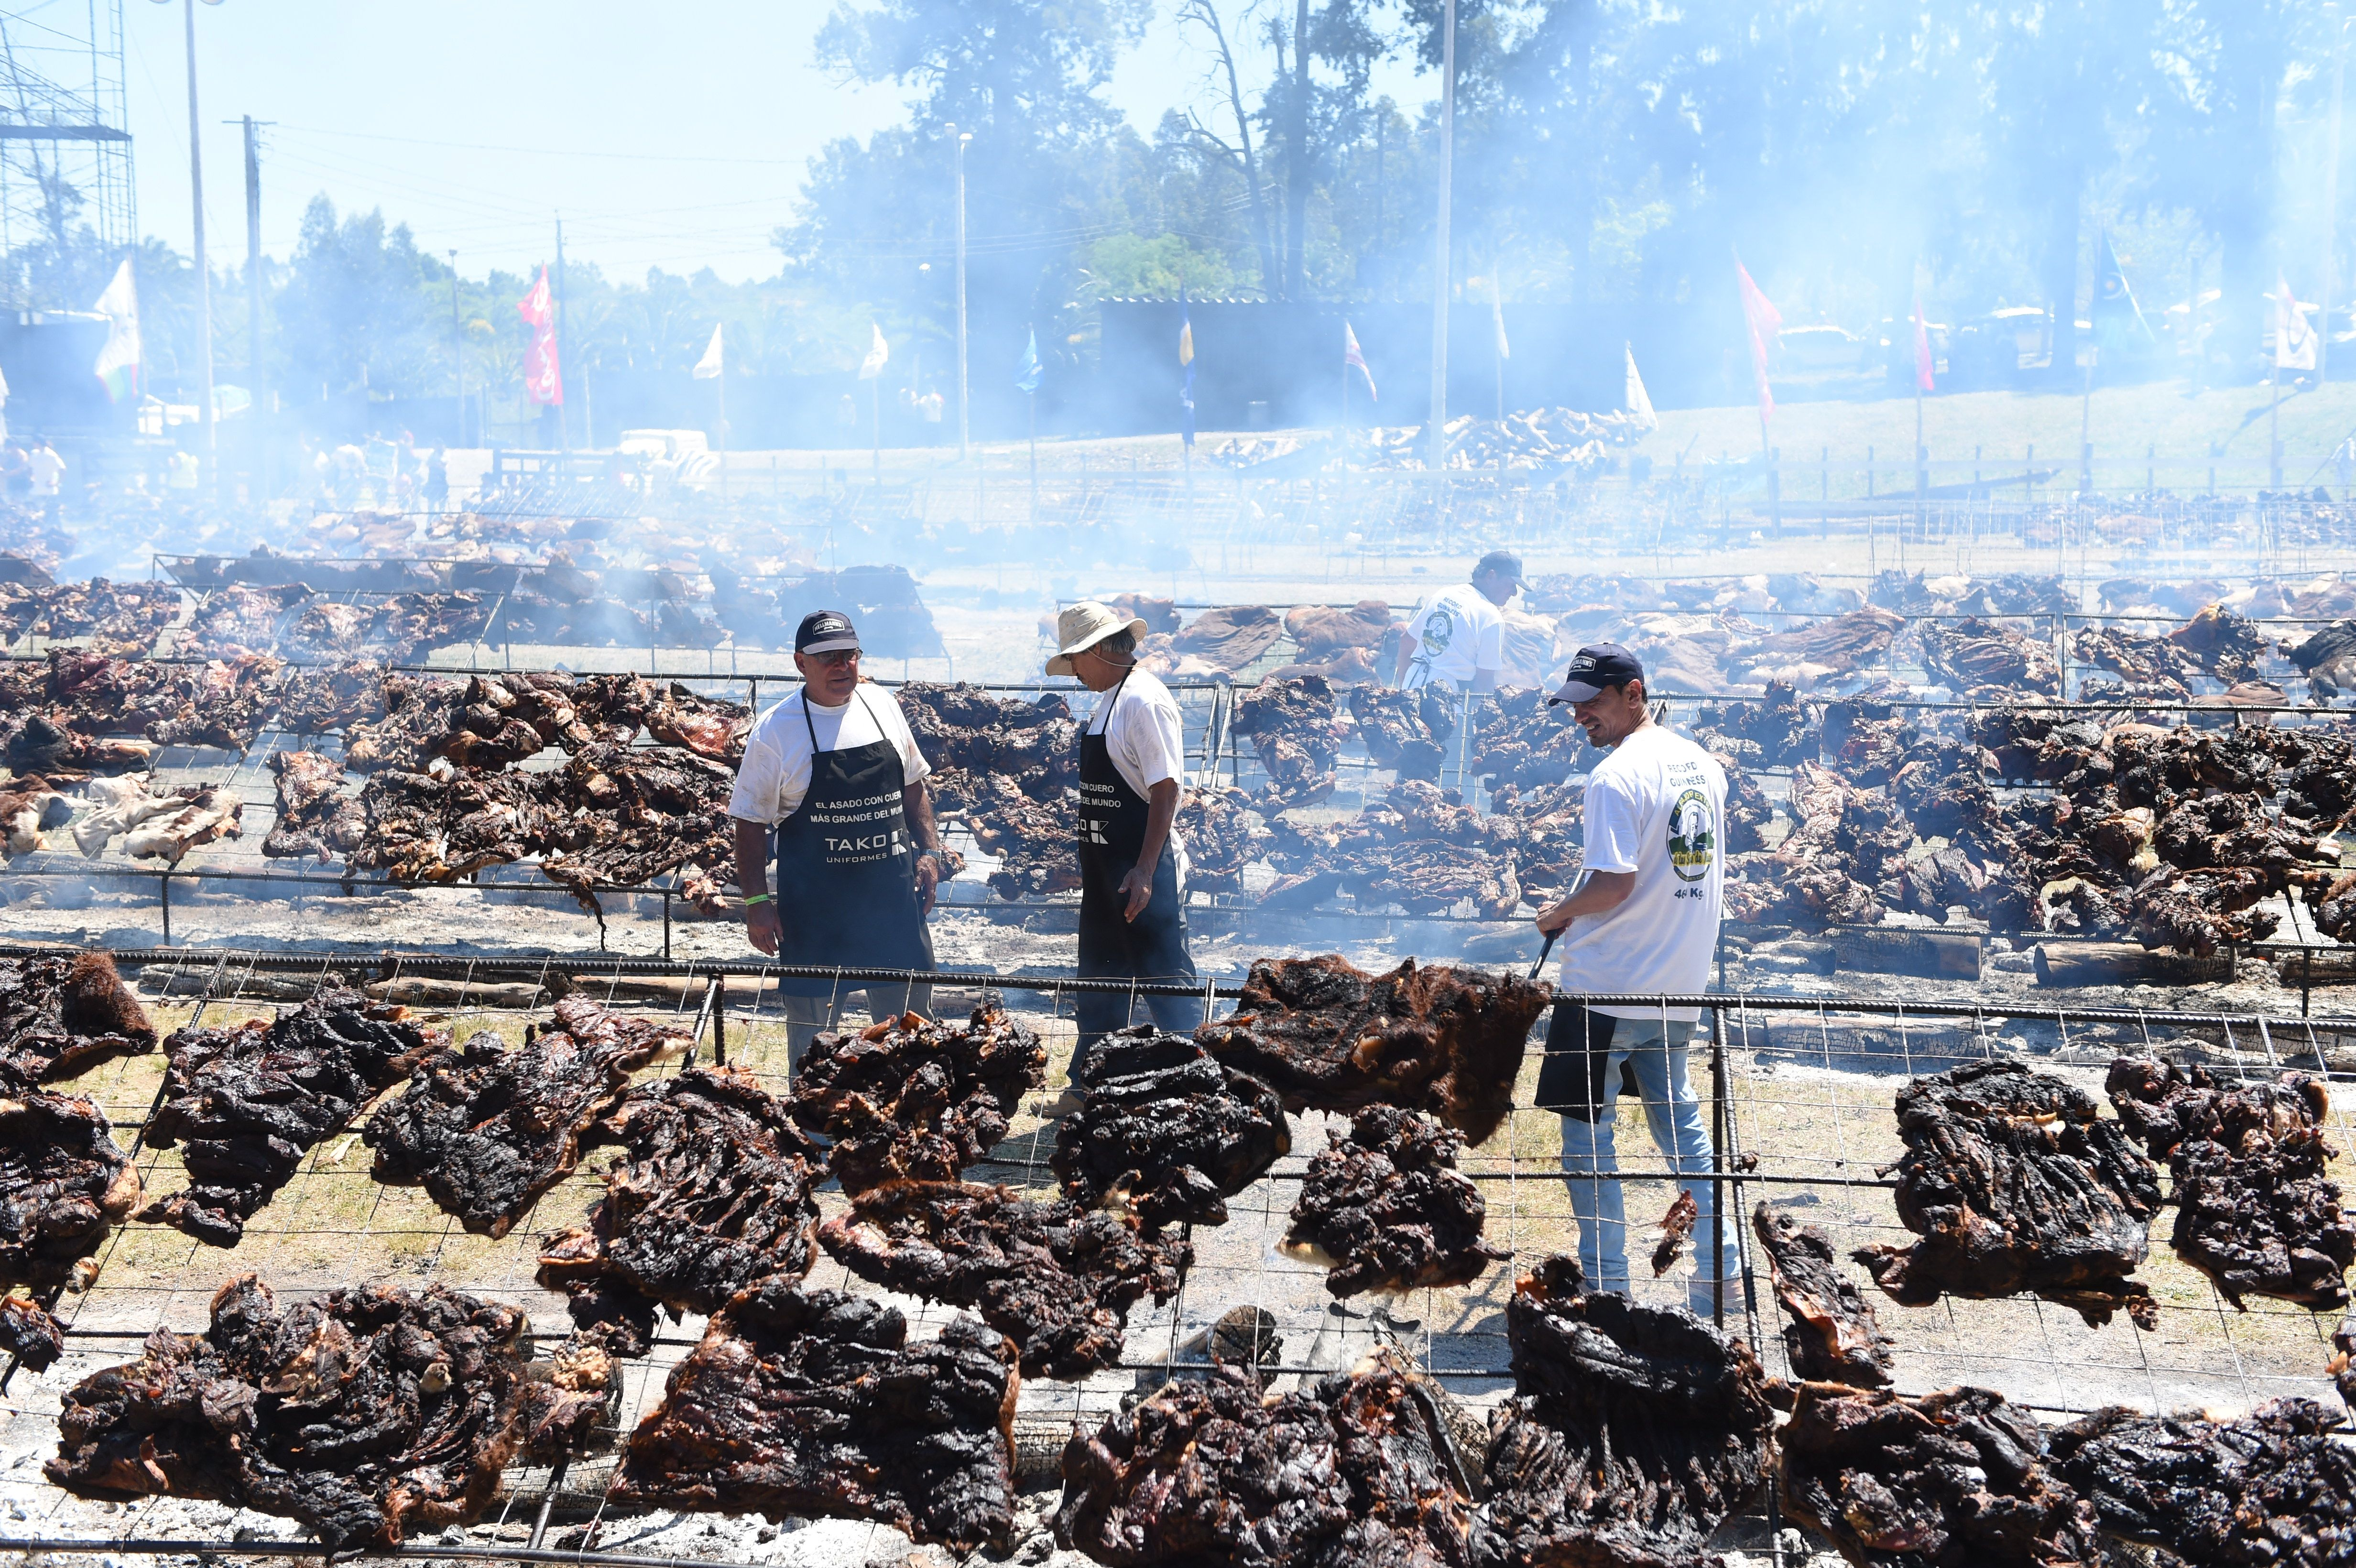 A total of 16,500 kg of beef are grilled in an attempt to break the Guinness record for  The World' s Biggest Barbecue  in Minas, Uruguay on Dec. 10, 2017.